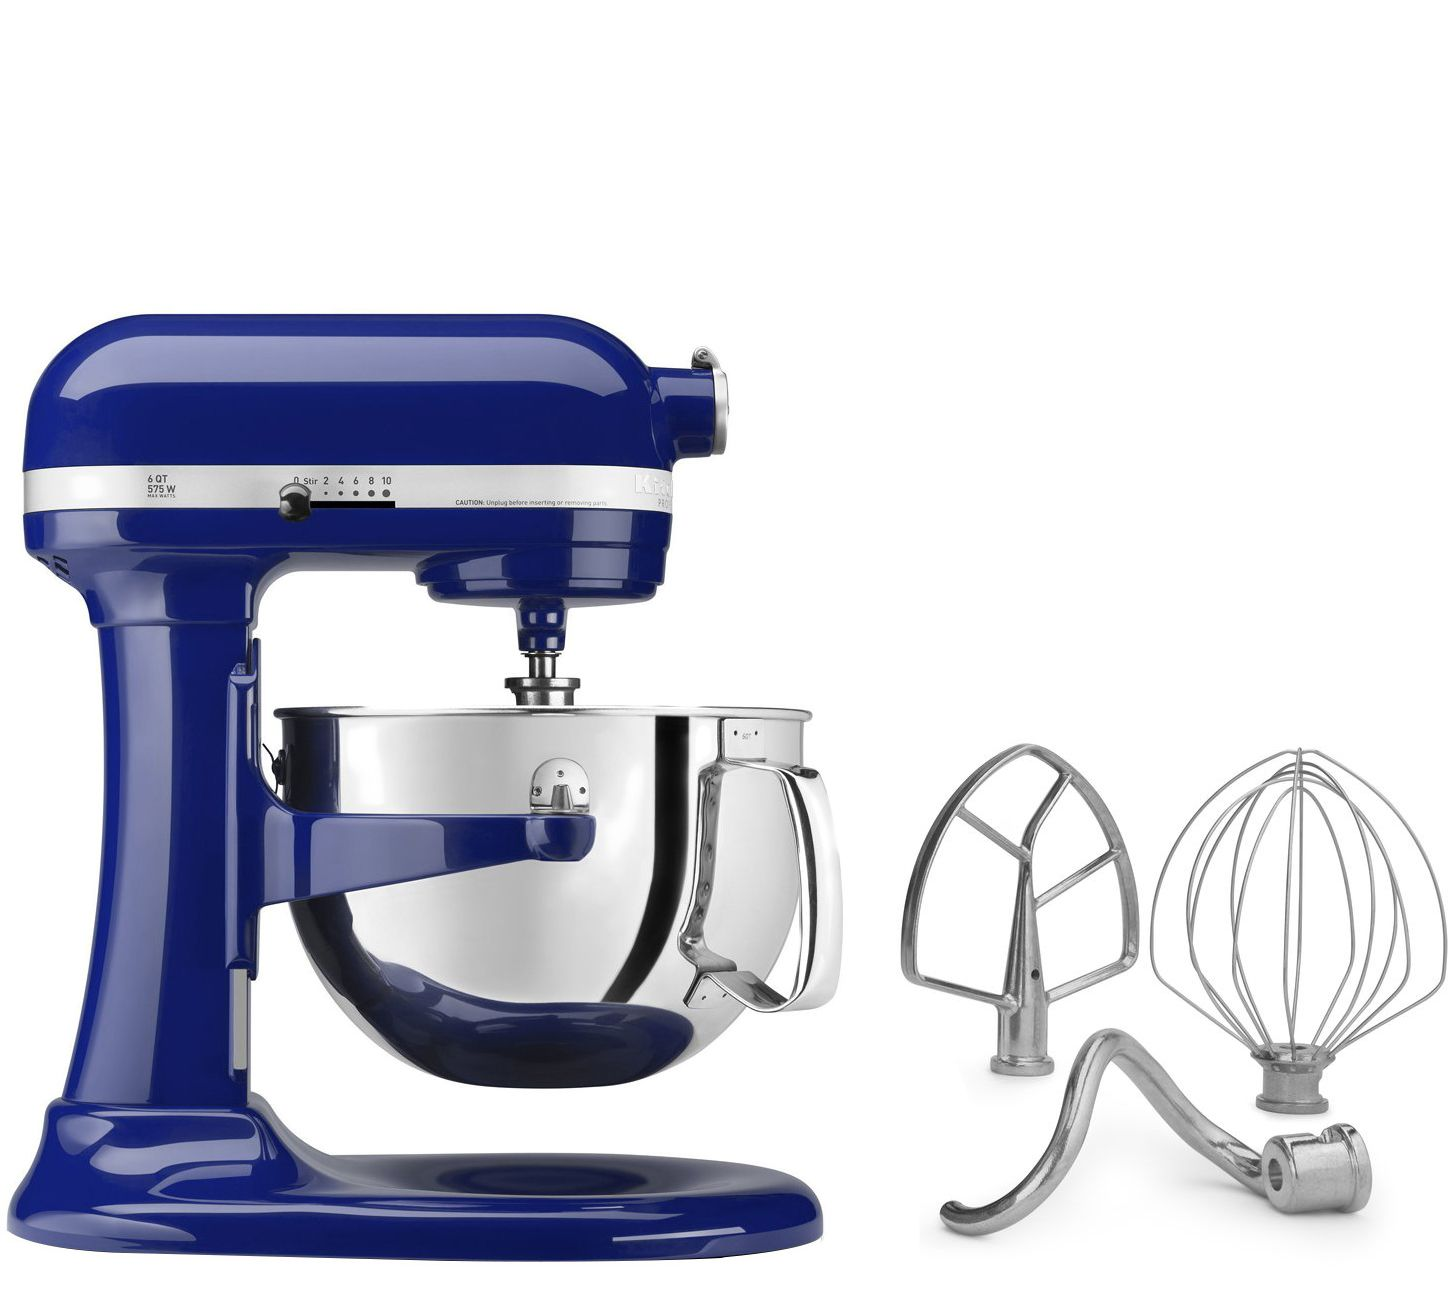 Miraculous Kitchenaid 6 Qt Pro Stand Mixer Qvc Com Download Free Architecture Designs Scobabritishbridgeorg